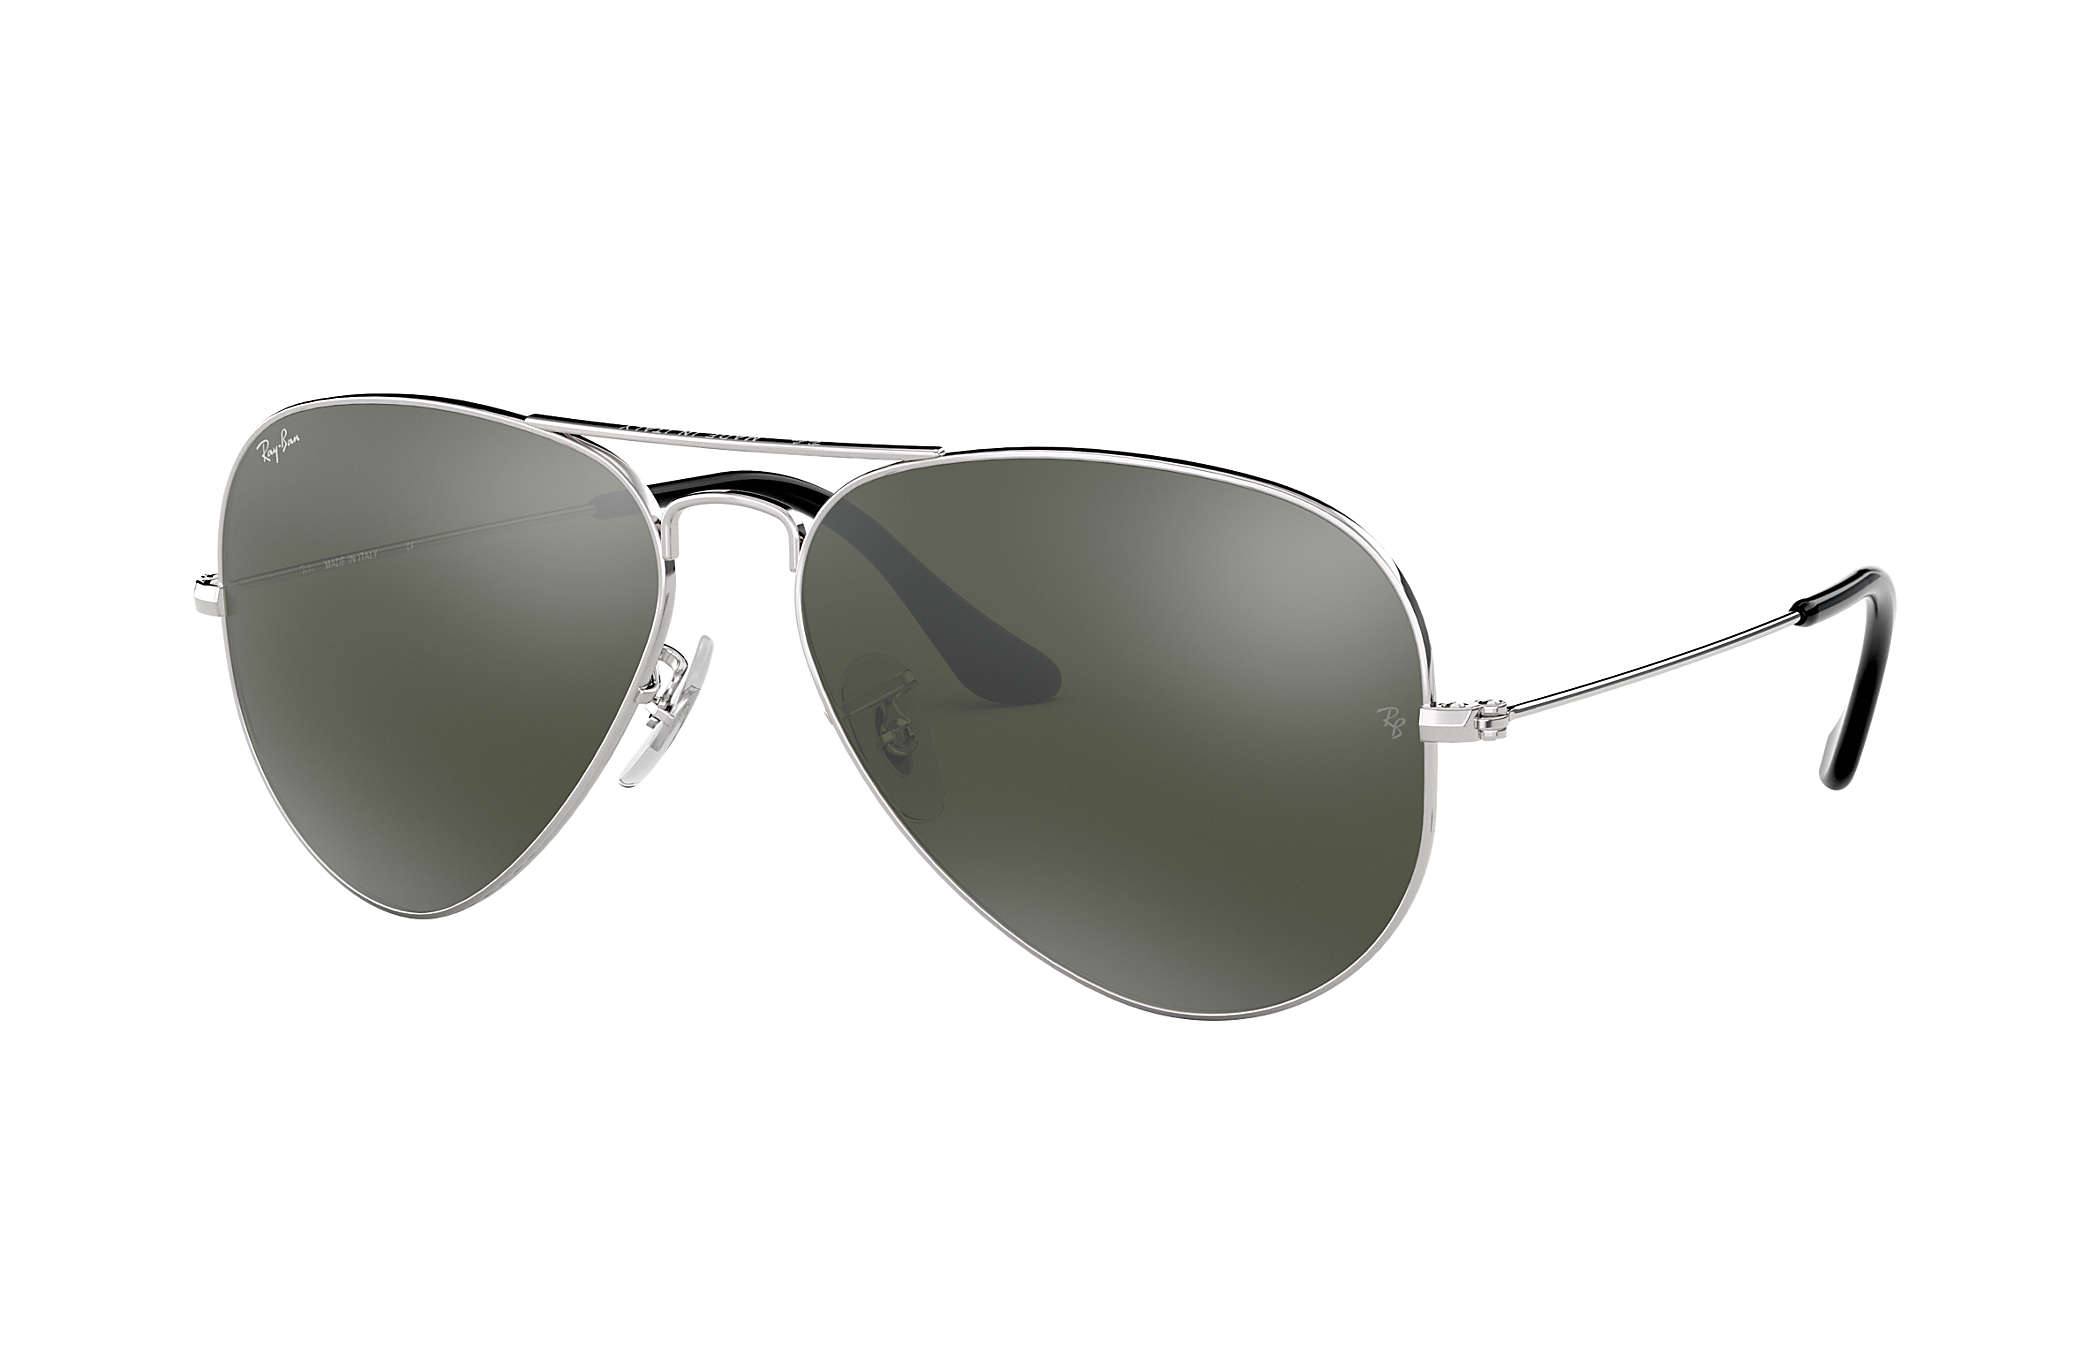 528b9f4d04 Ray-Ban Aviator Mirror RB3025 Silver - Metal - Silver Lenses ...